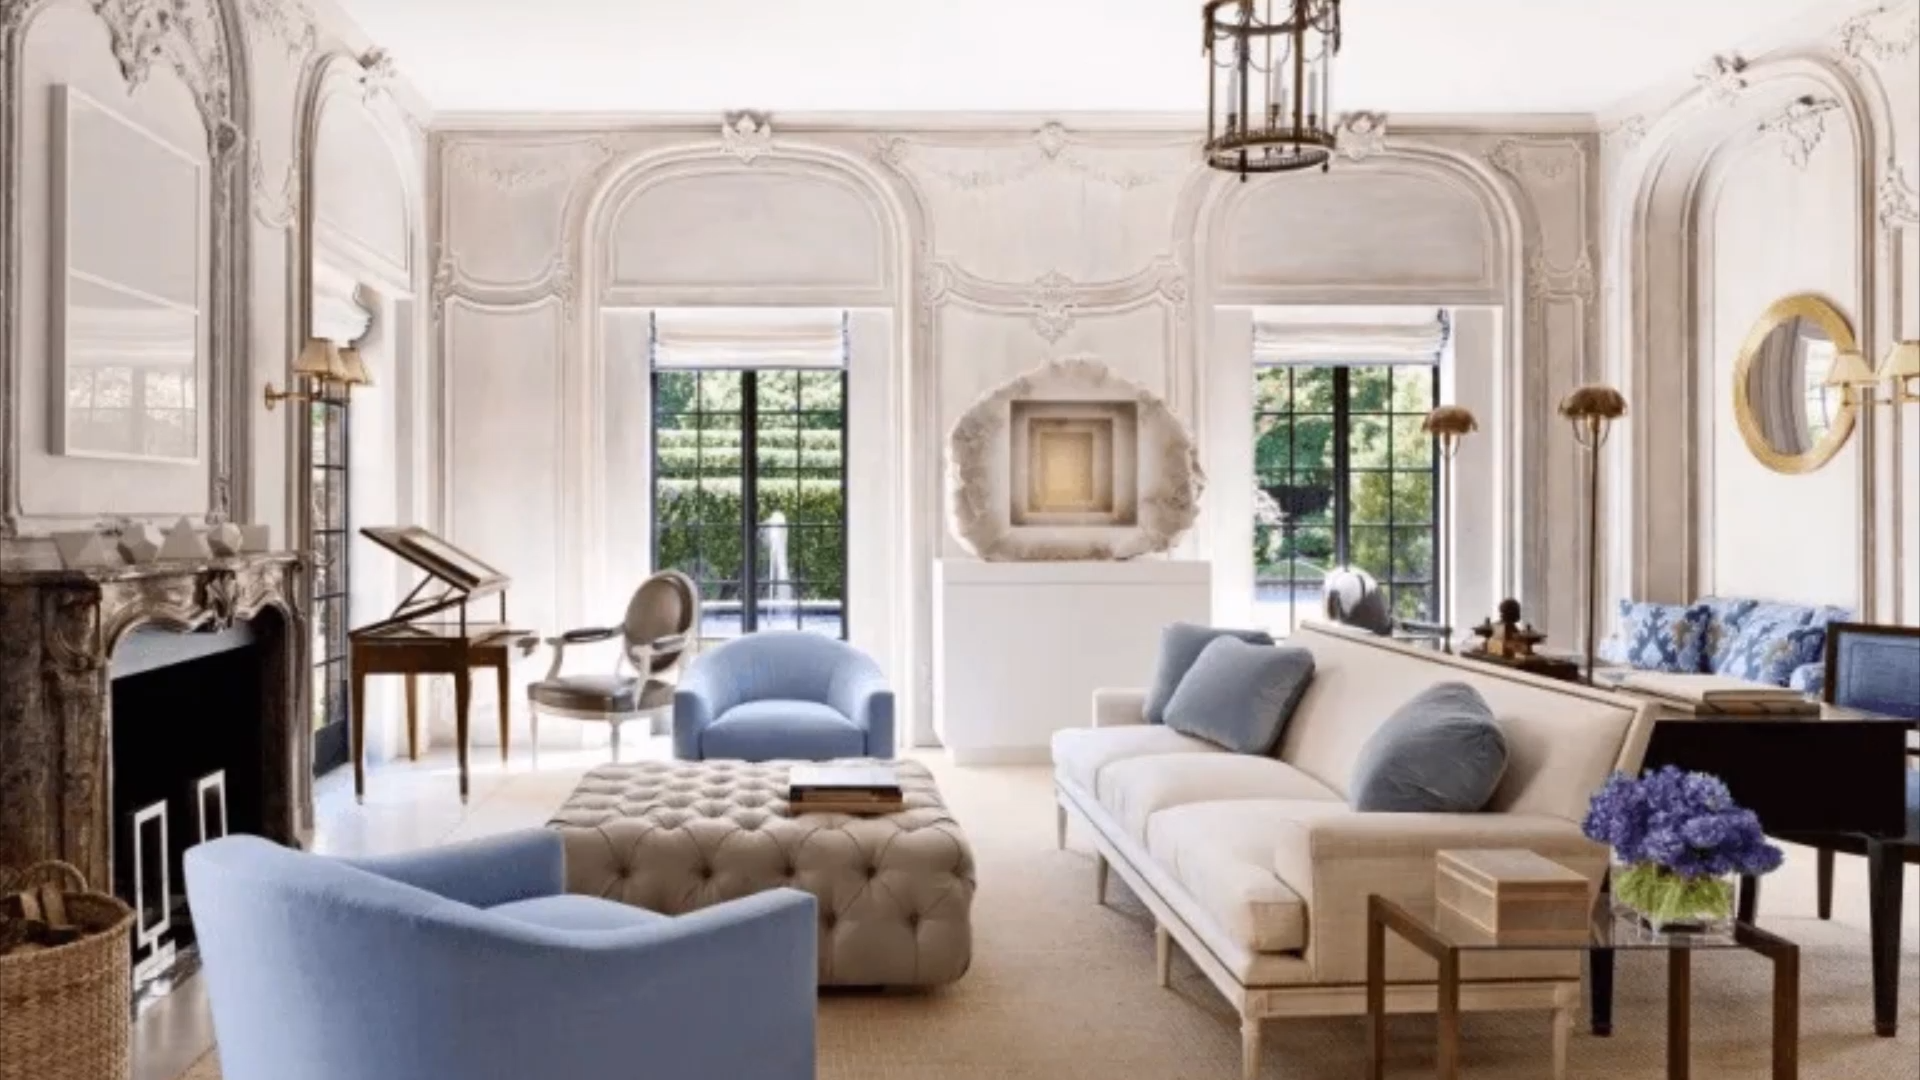 10 Top Transitional Interior Design Must-Haves for the Perfect Home